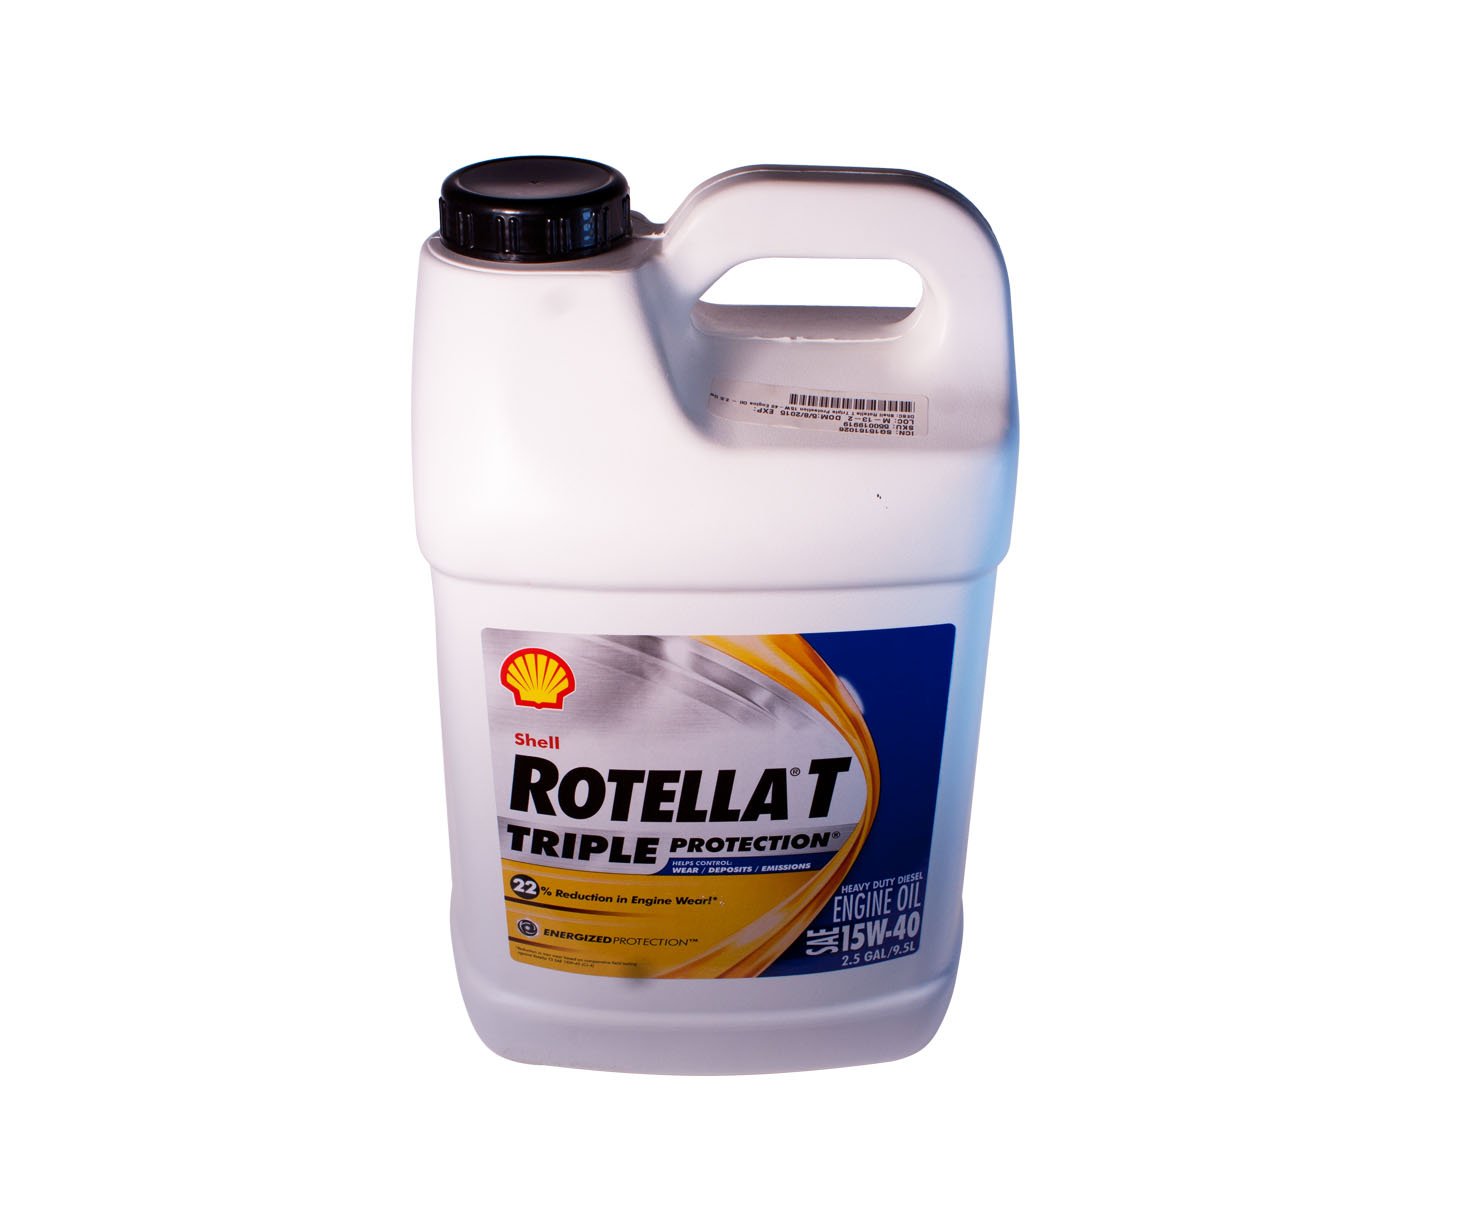 Shell Rotella T4 >> Shell Rotella T4 Triple Protection 15w 40 Ck 4 Heavy Duty Diesel Engine Oil Gallon Jug